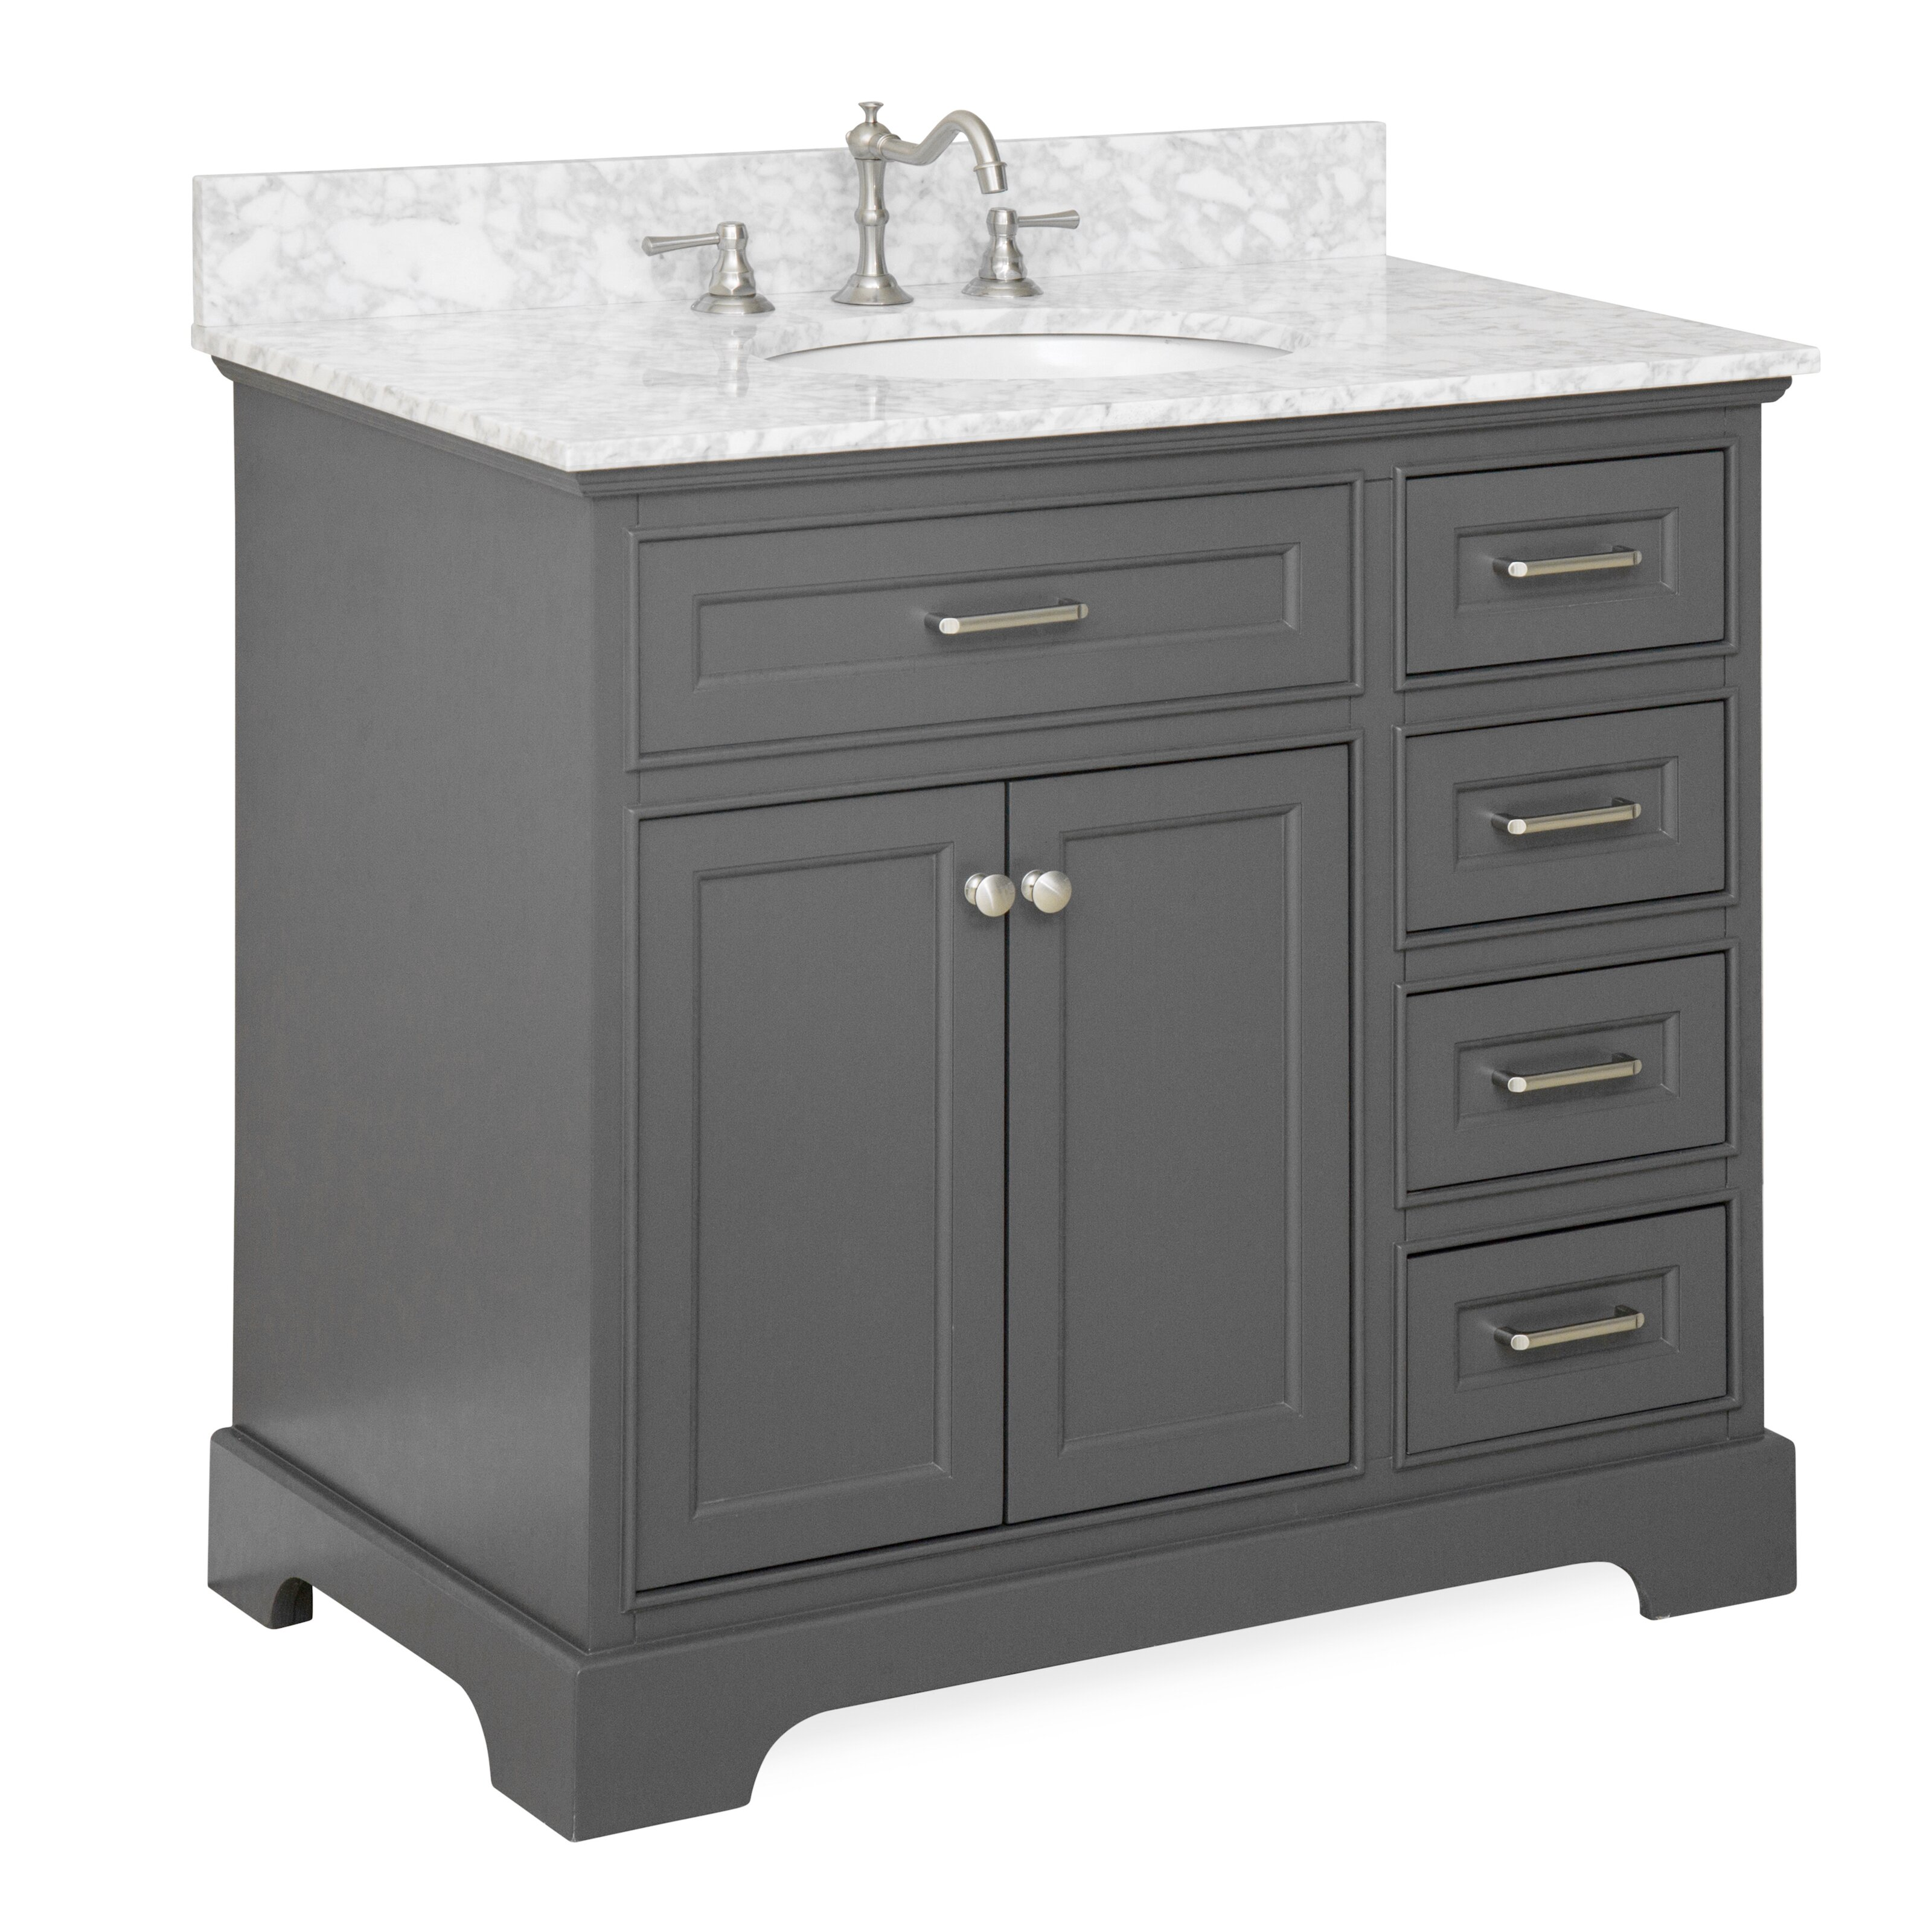 Kbc Aria 36 Single Vanity Set Reviews Wayfair